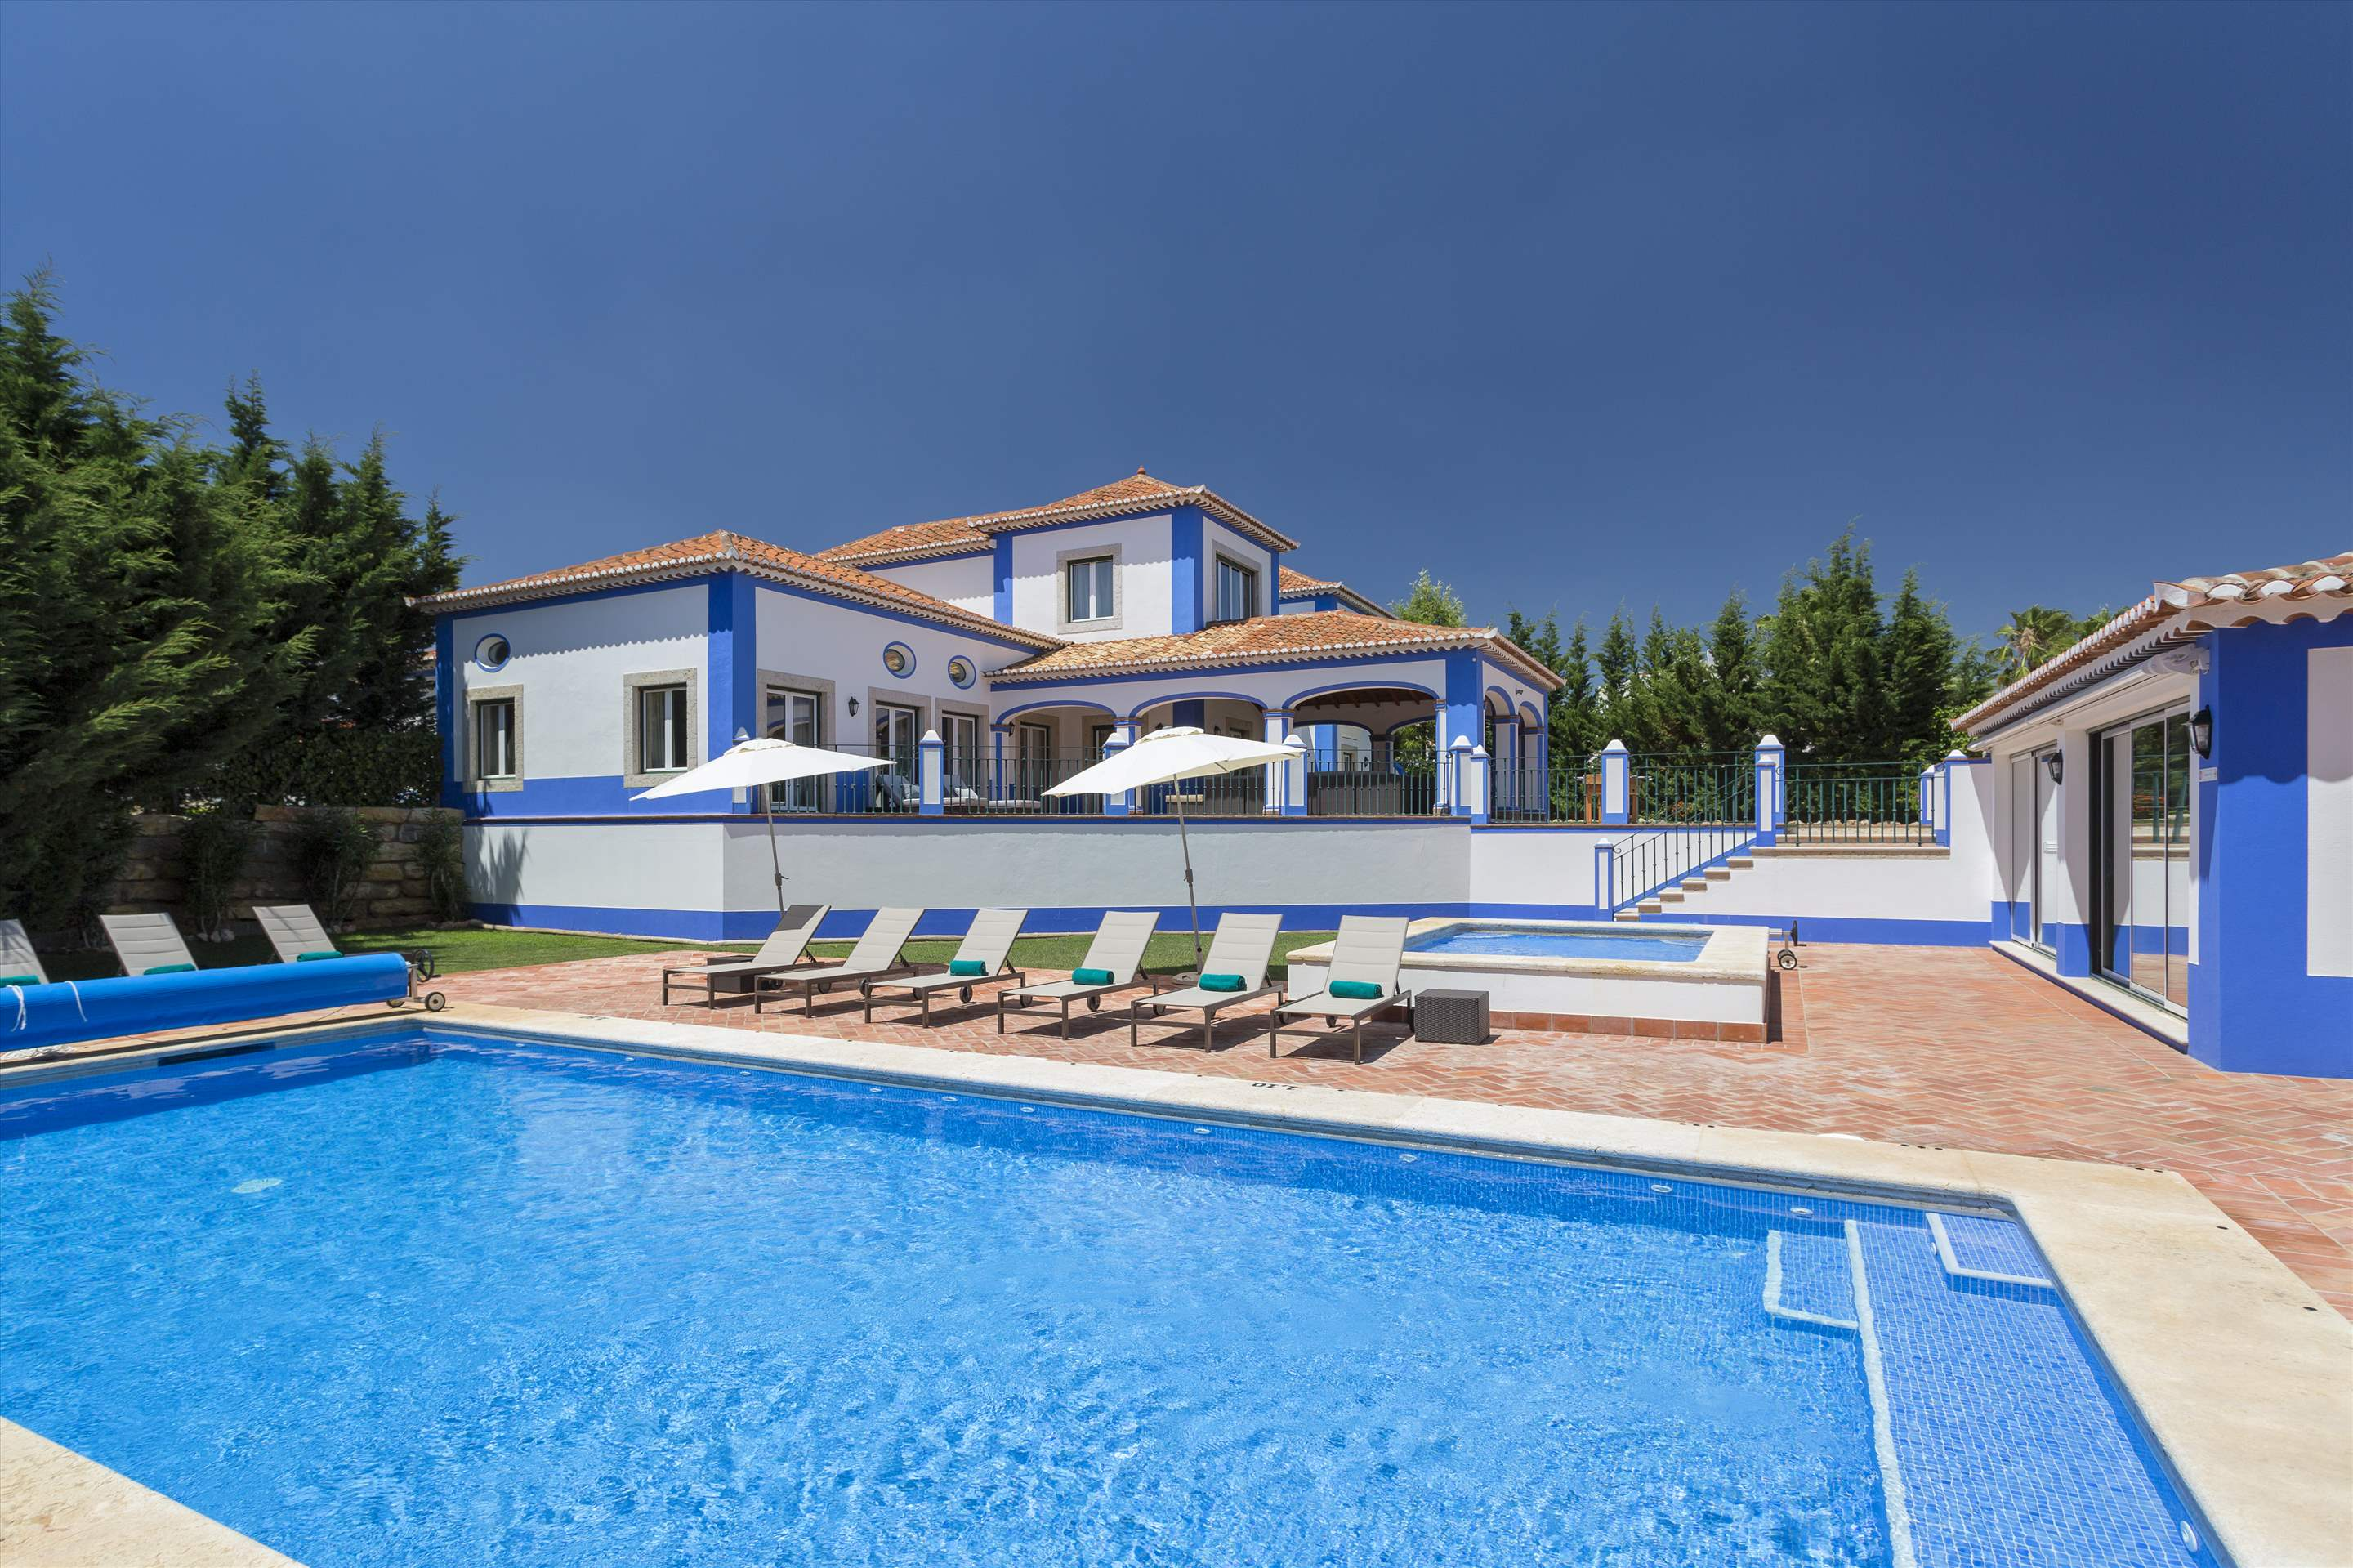 Villa Milho, Four Bedroom Rate, 4 bedroom villa in Vilamoura Area, Algarve Photo #1